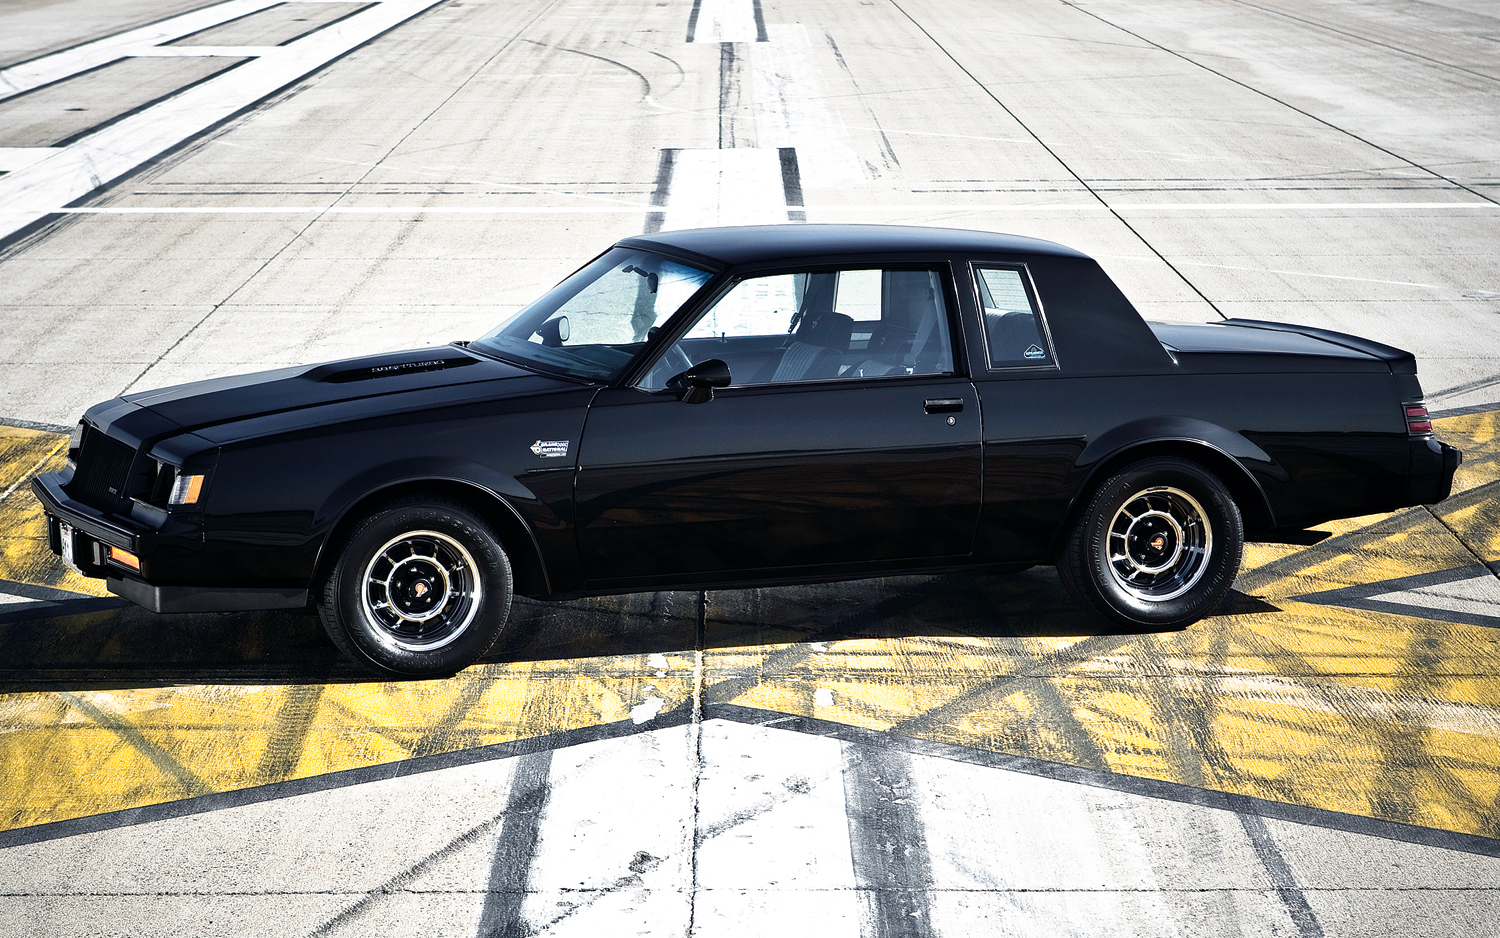 1987 Buick Grand National  Photo: motortrend